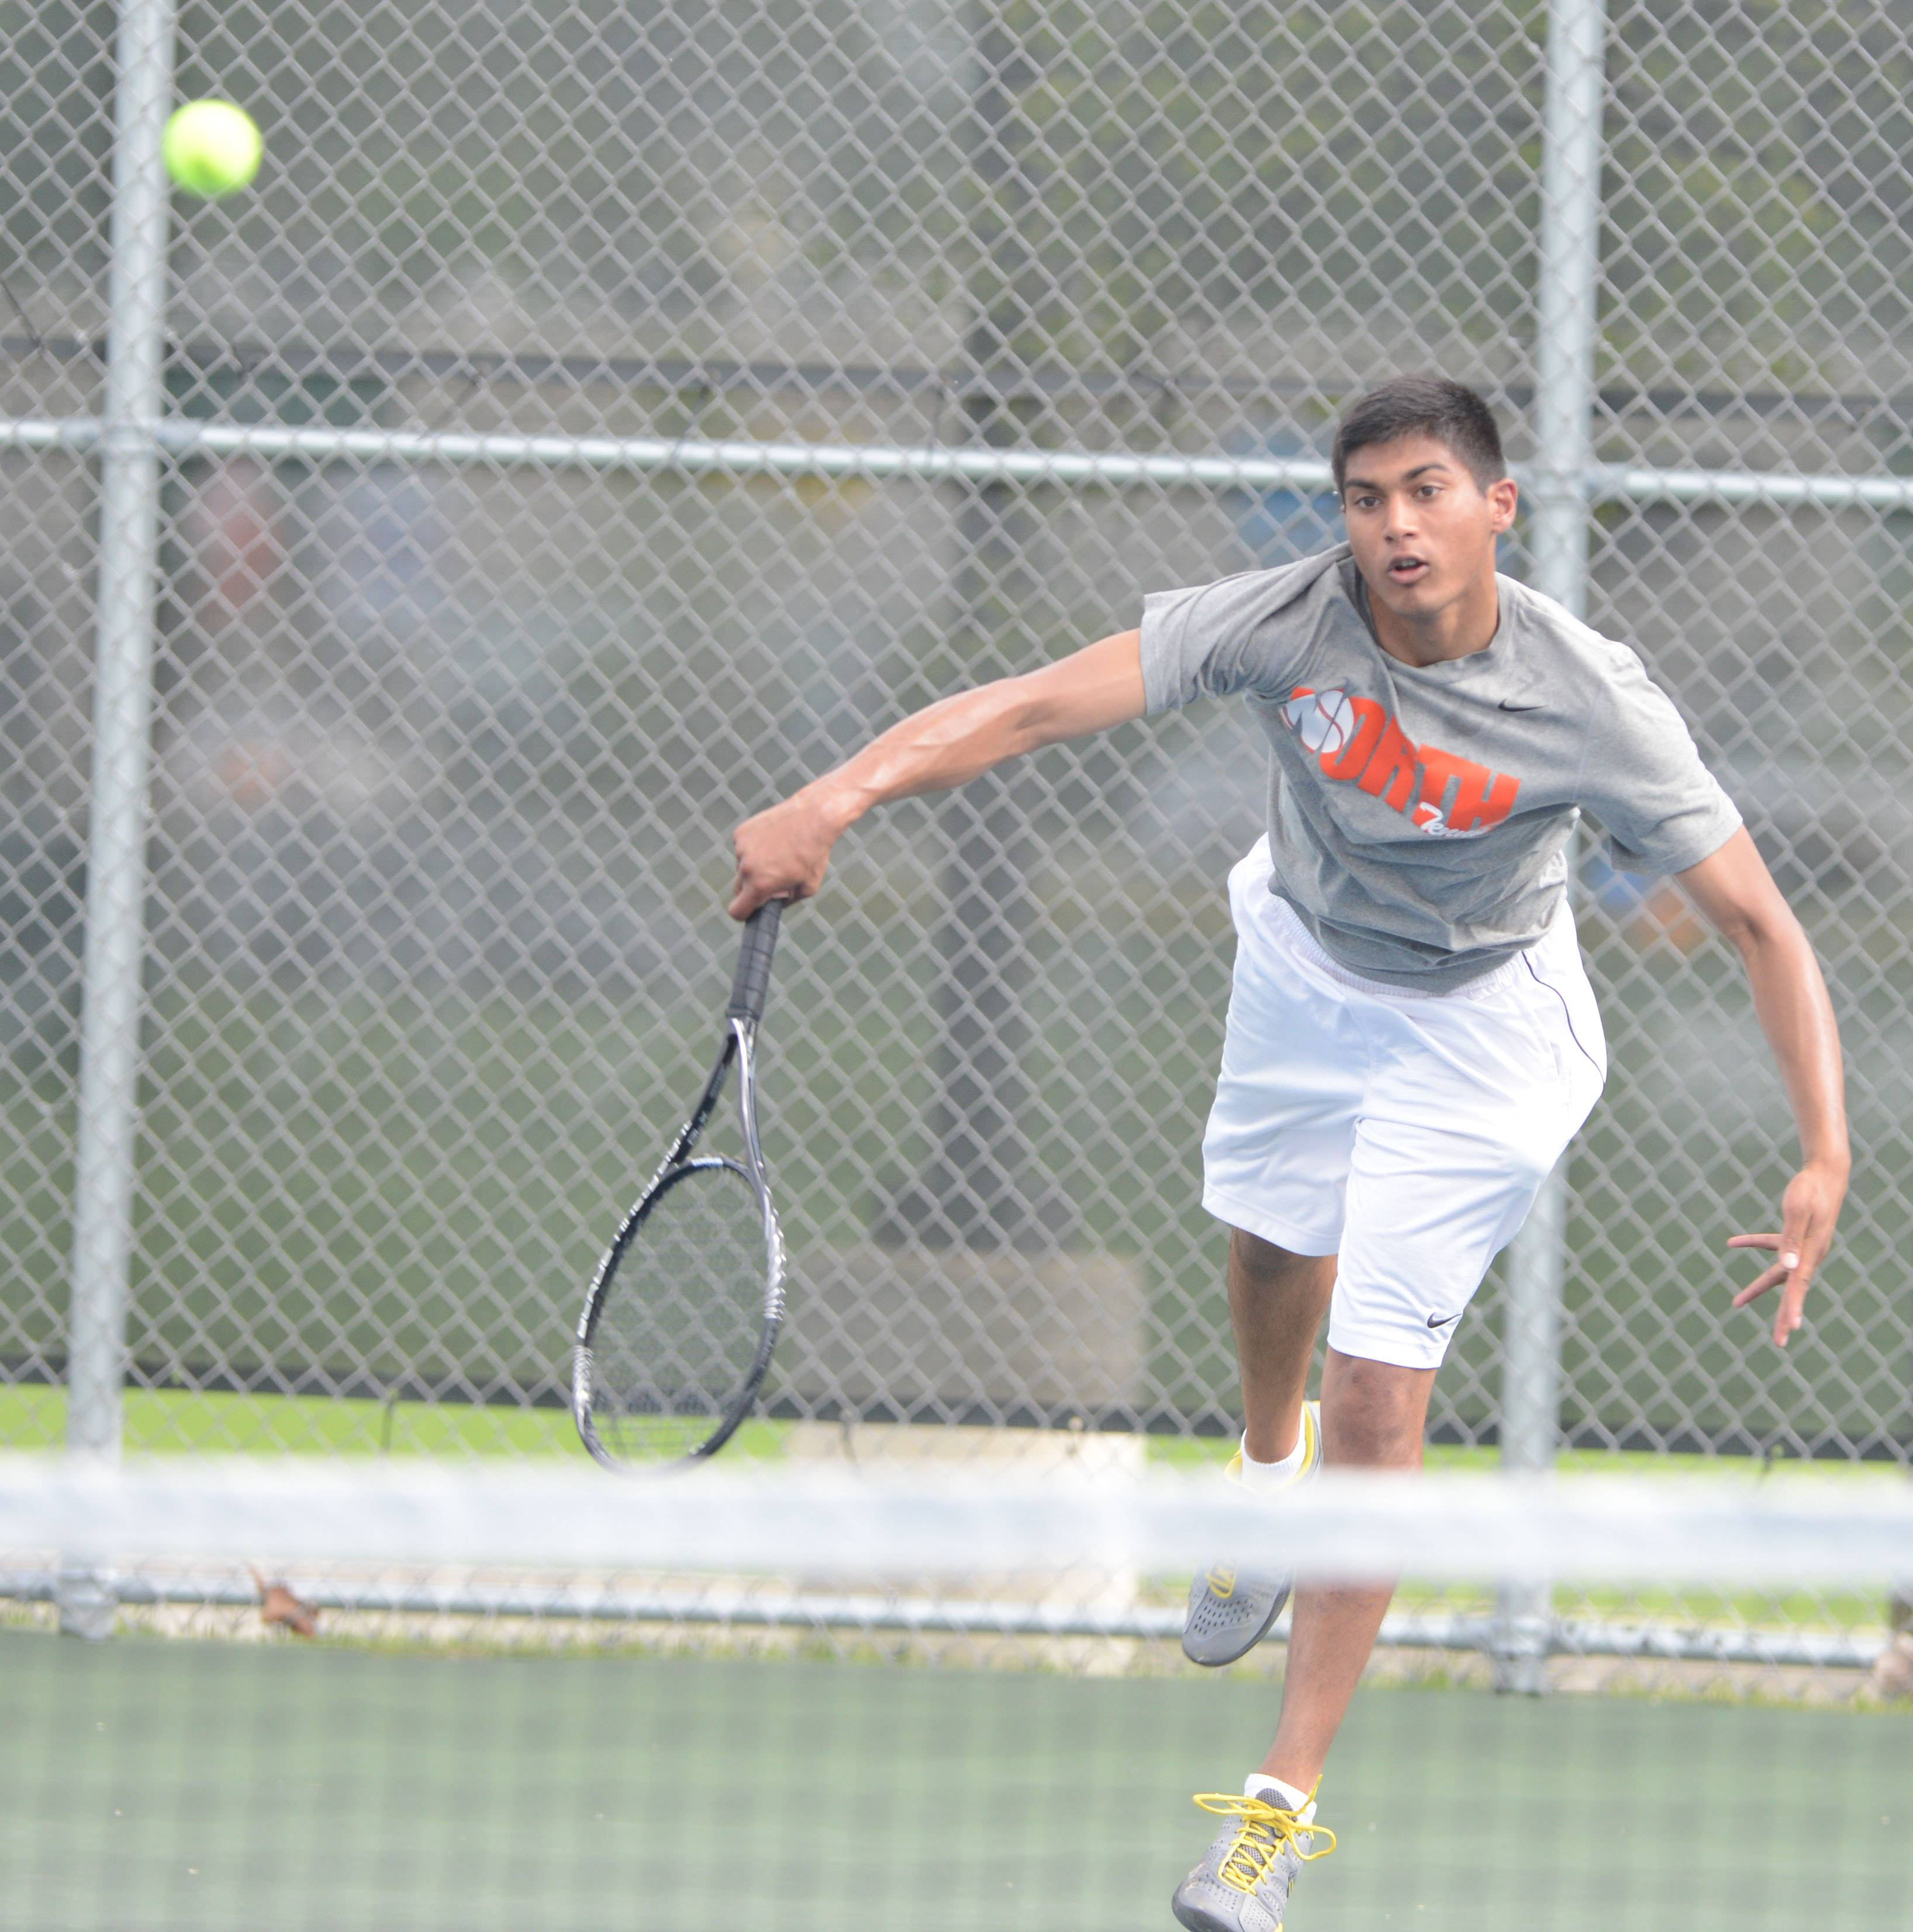 Amit Iyer of Neuqua Valley works the ball during the Naperville North boys tennis meet Tuesday. He is a #1 singles player.